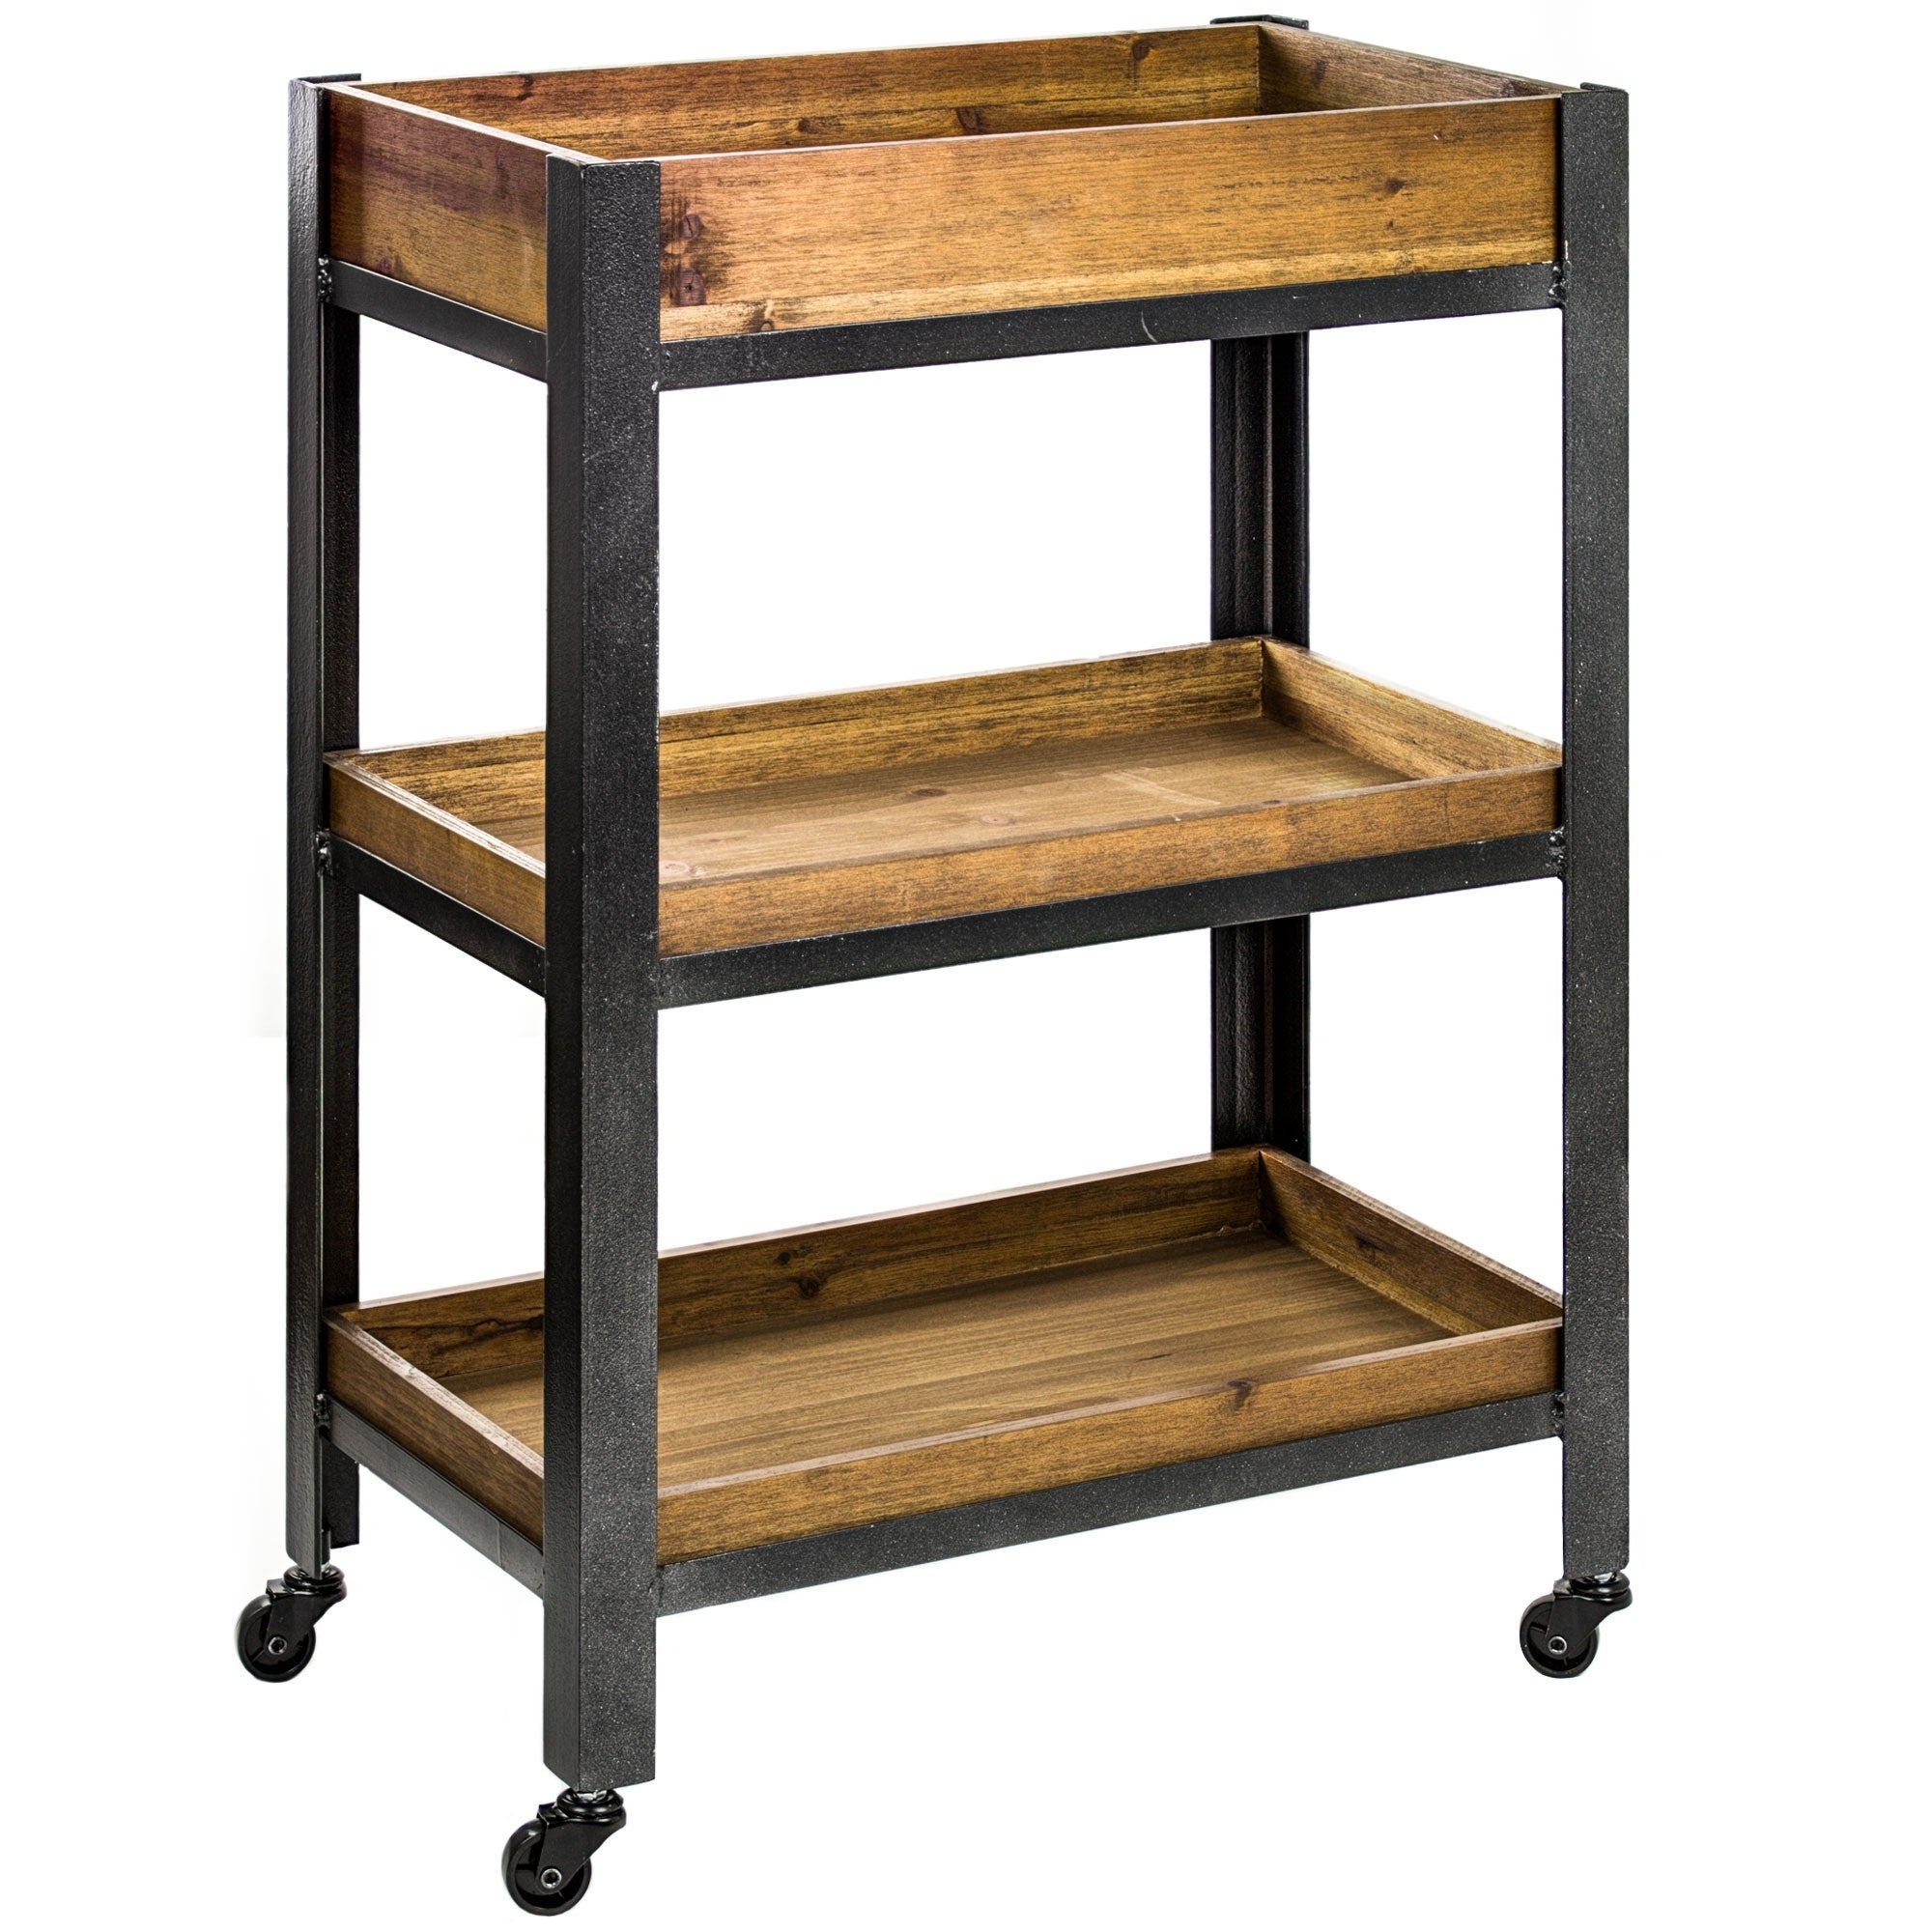 Shop American Art Decor Wood Metal Rolling Storage Cart With Shelves Farmhouse Furniture Overstock 22851890